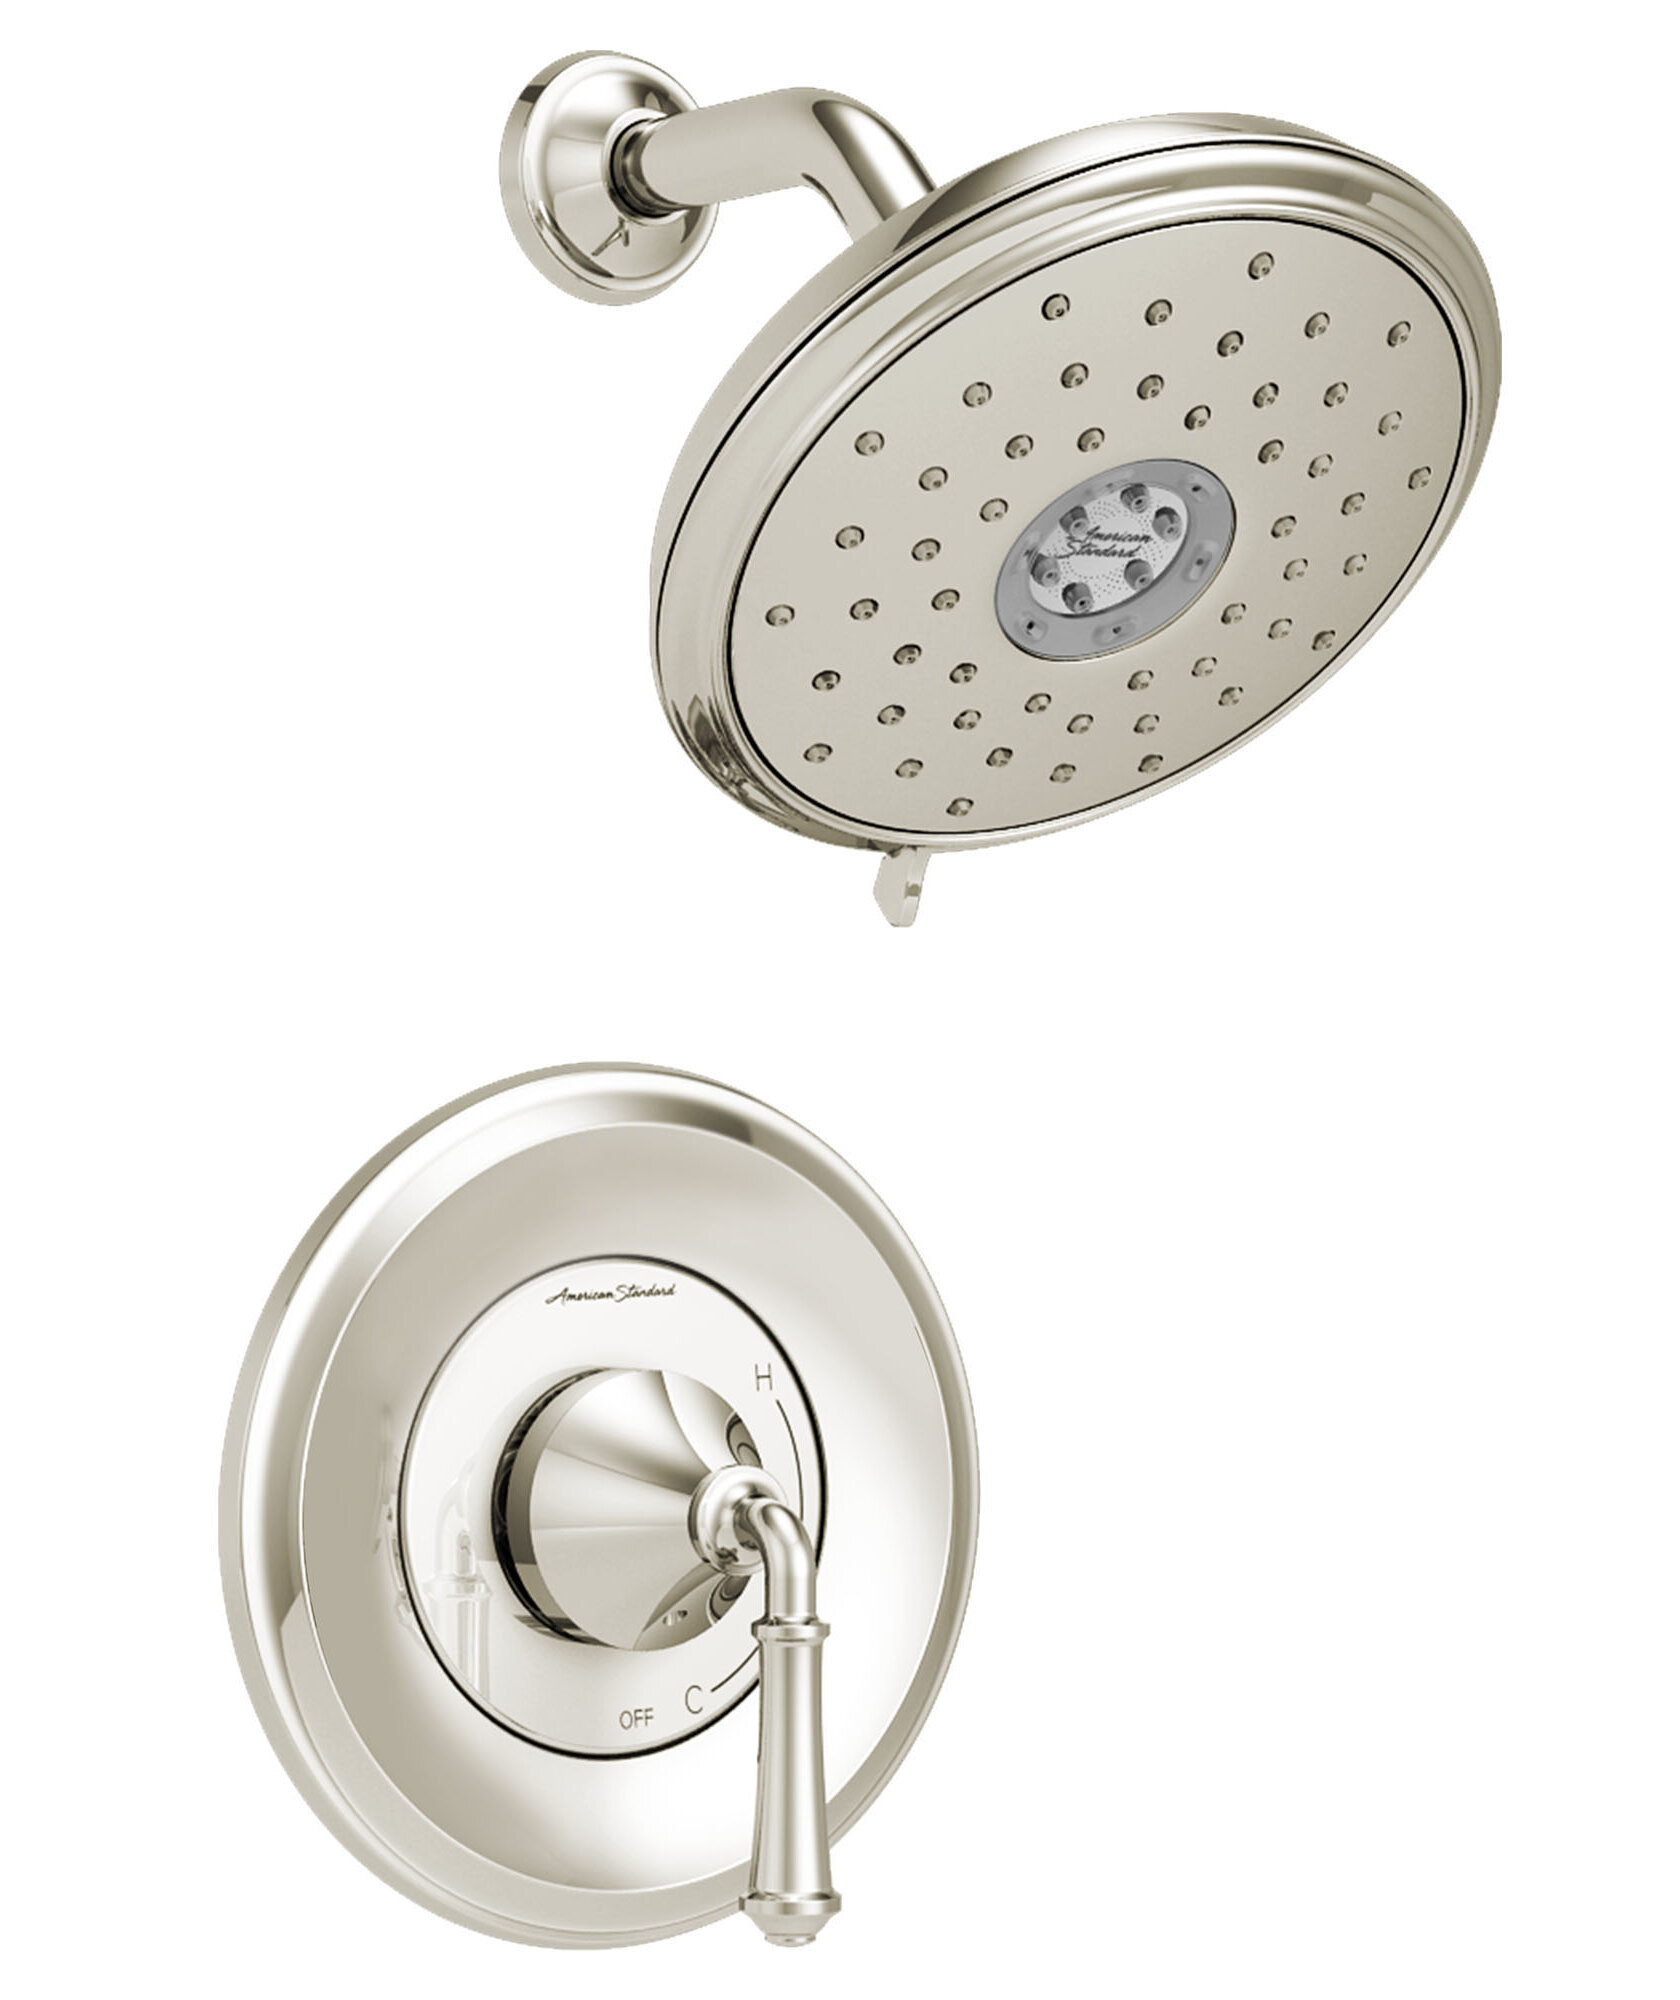 Delancey Dual Function Shower Faucet Trim With Cartridge